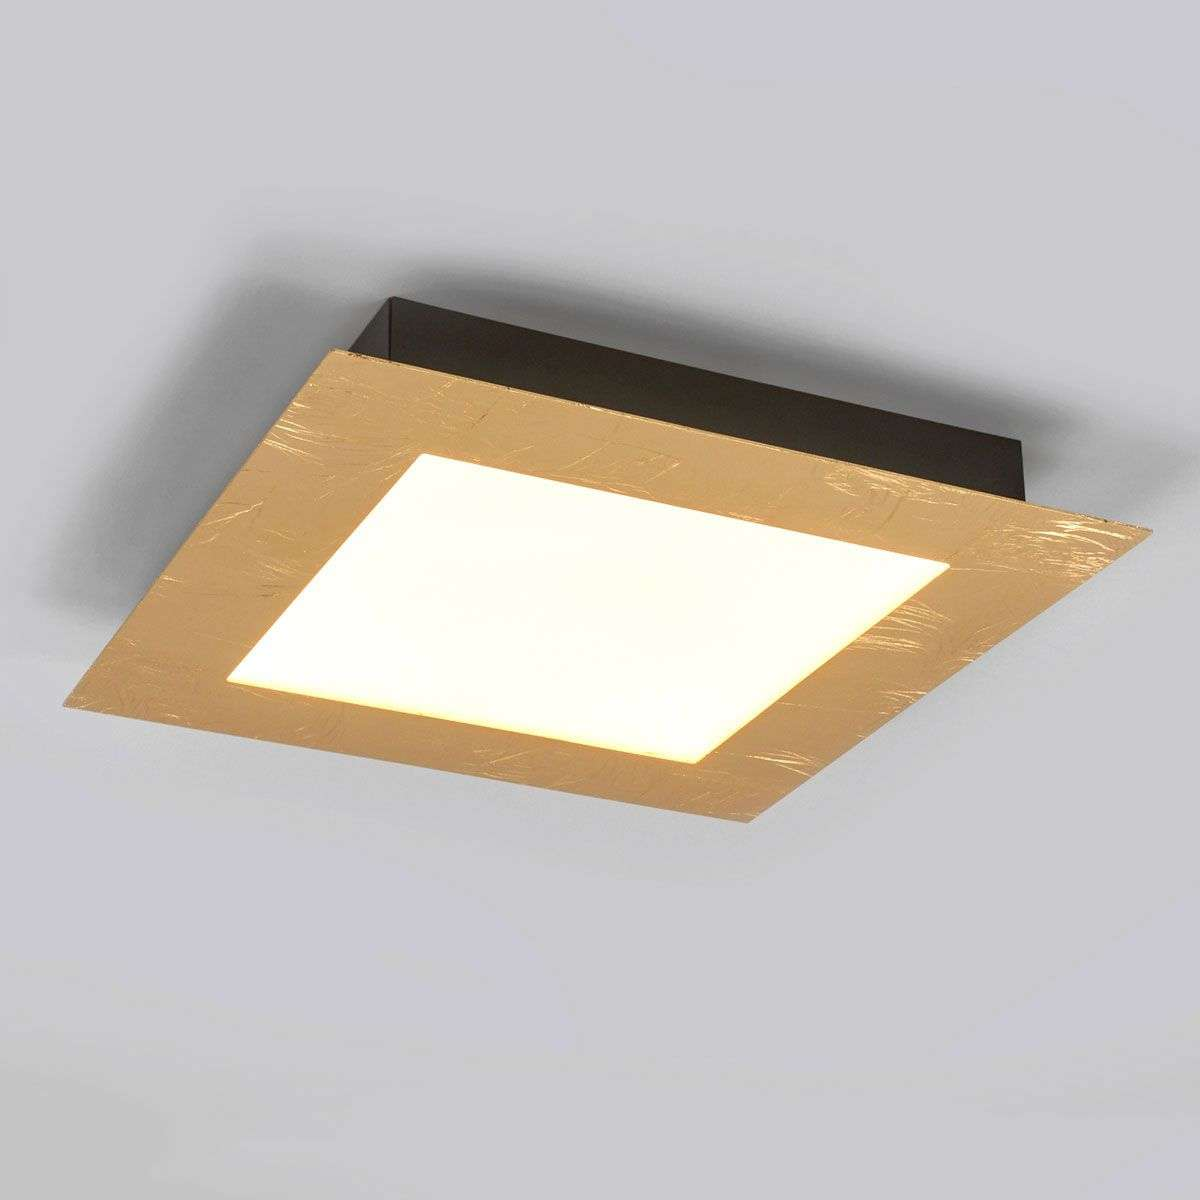 Rectangular led ceiling light deno in gold lights rectangular led ceiling light deno in gold 6722350 31 mozeypictures Image collections